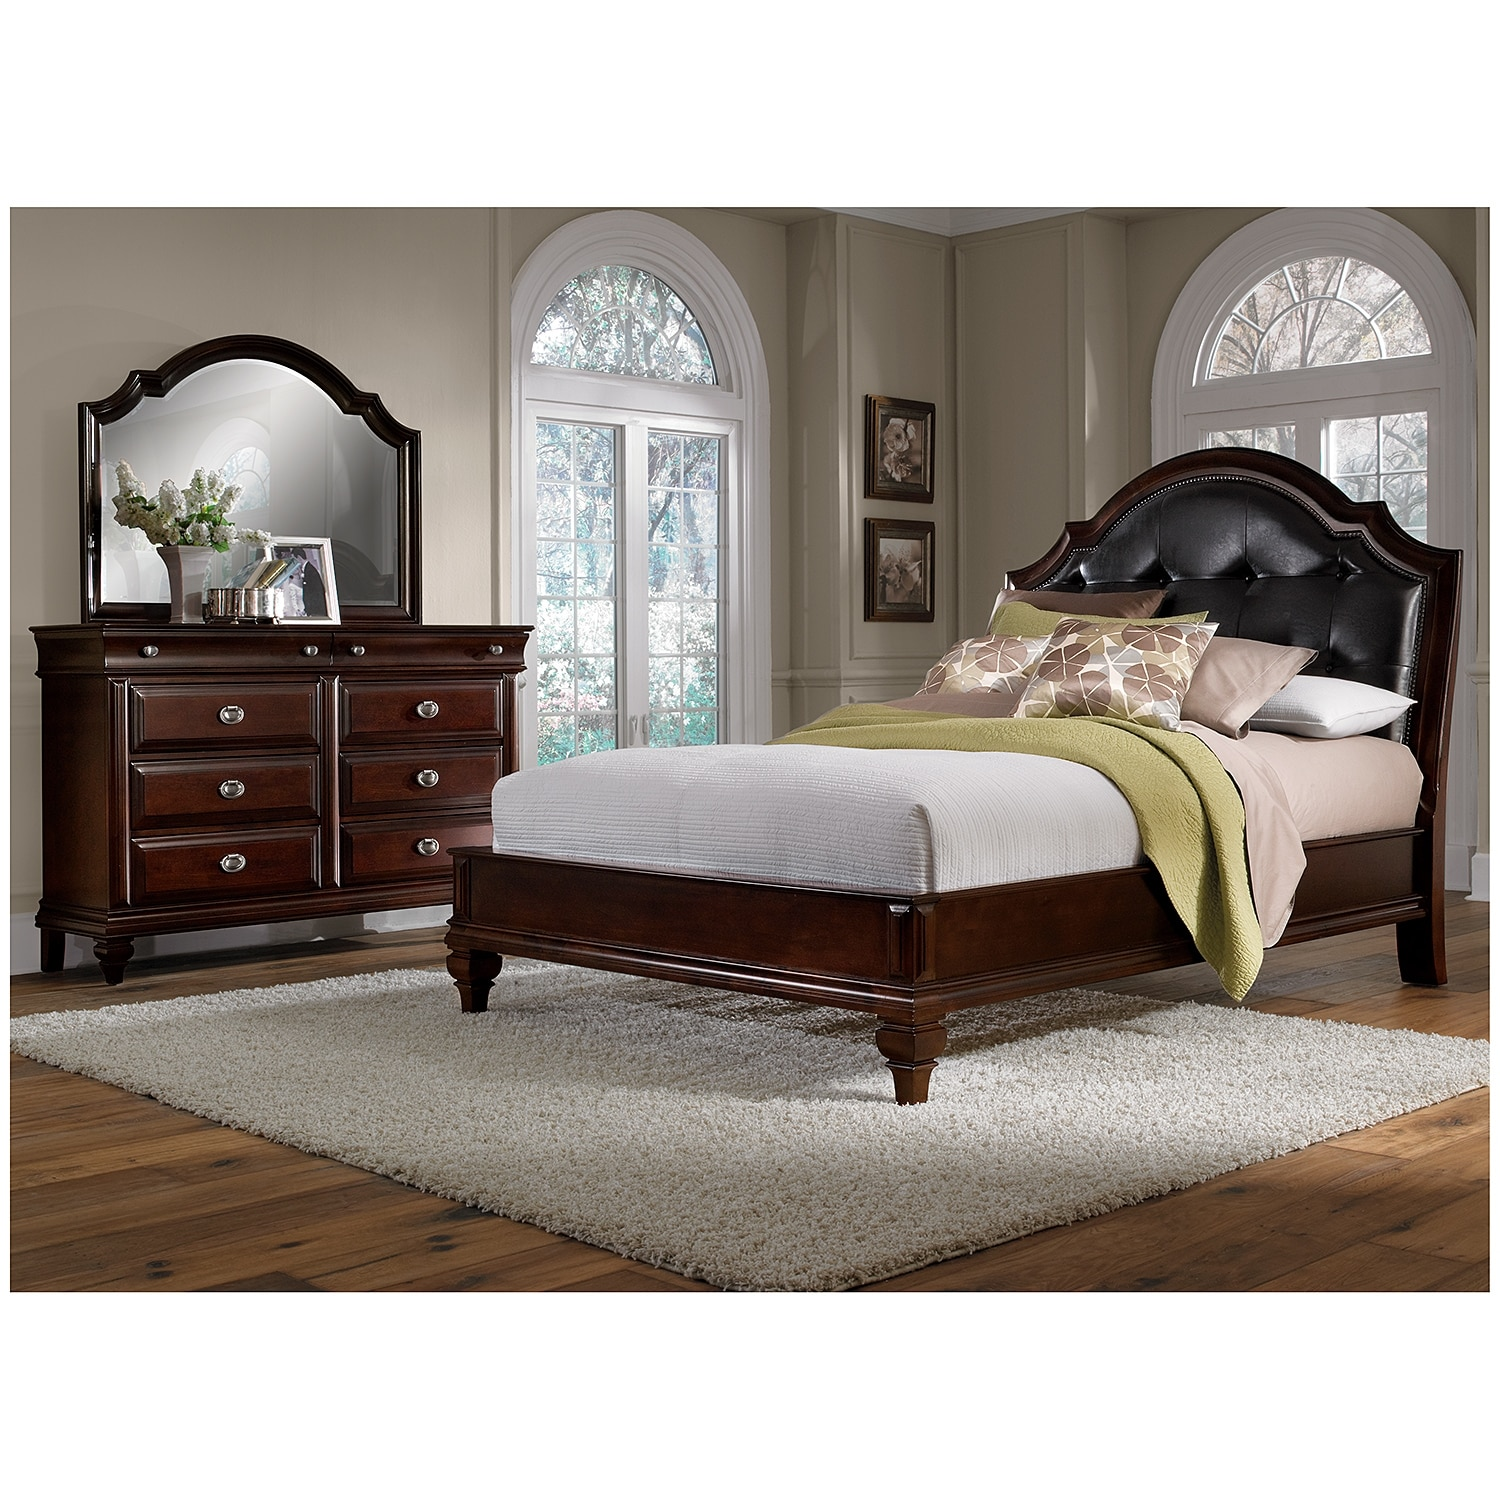 Was 1 099 98 Today 989 98 Manhattan 5 Piece Queen Bedroom Set Cherry By Pulaski